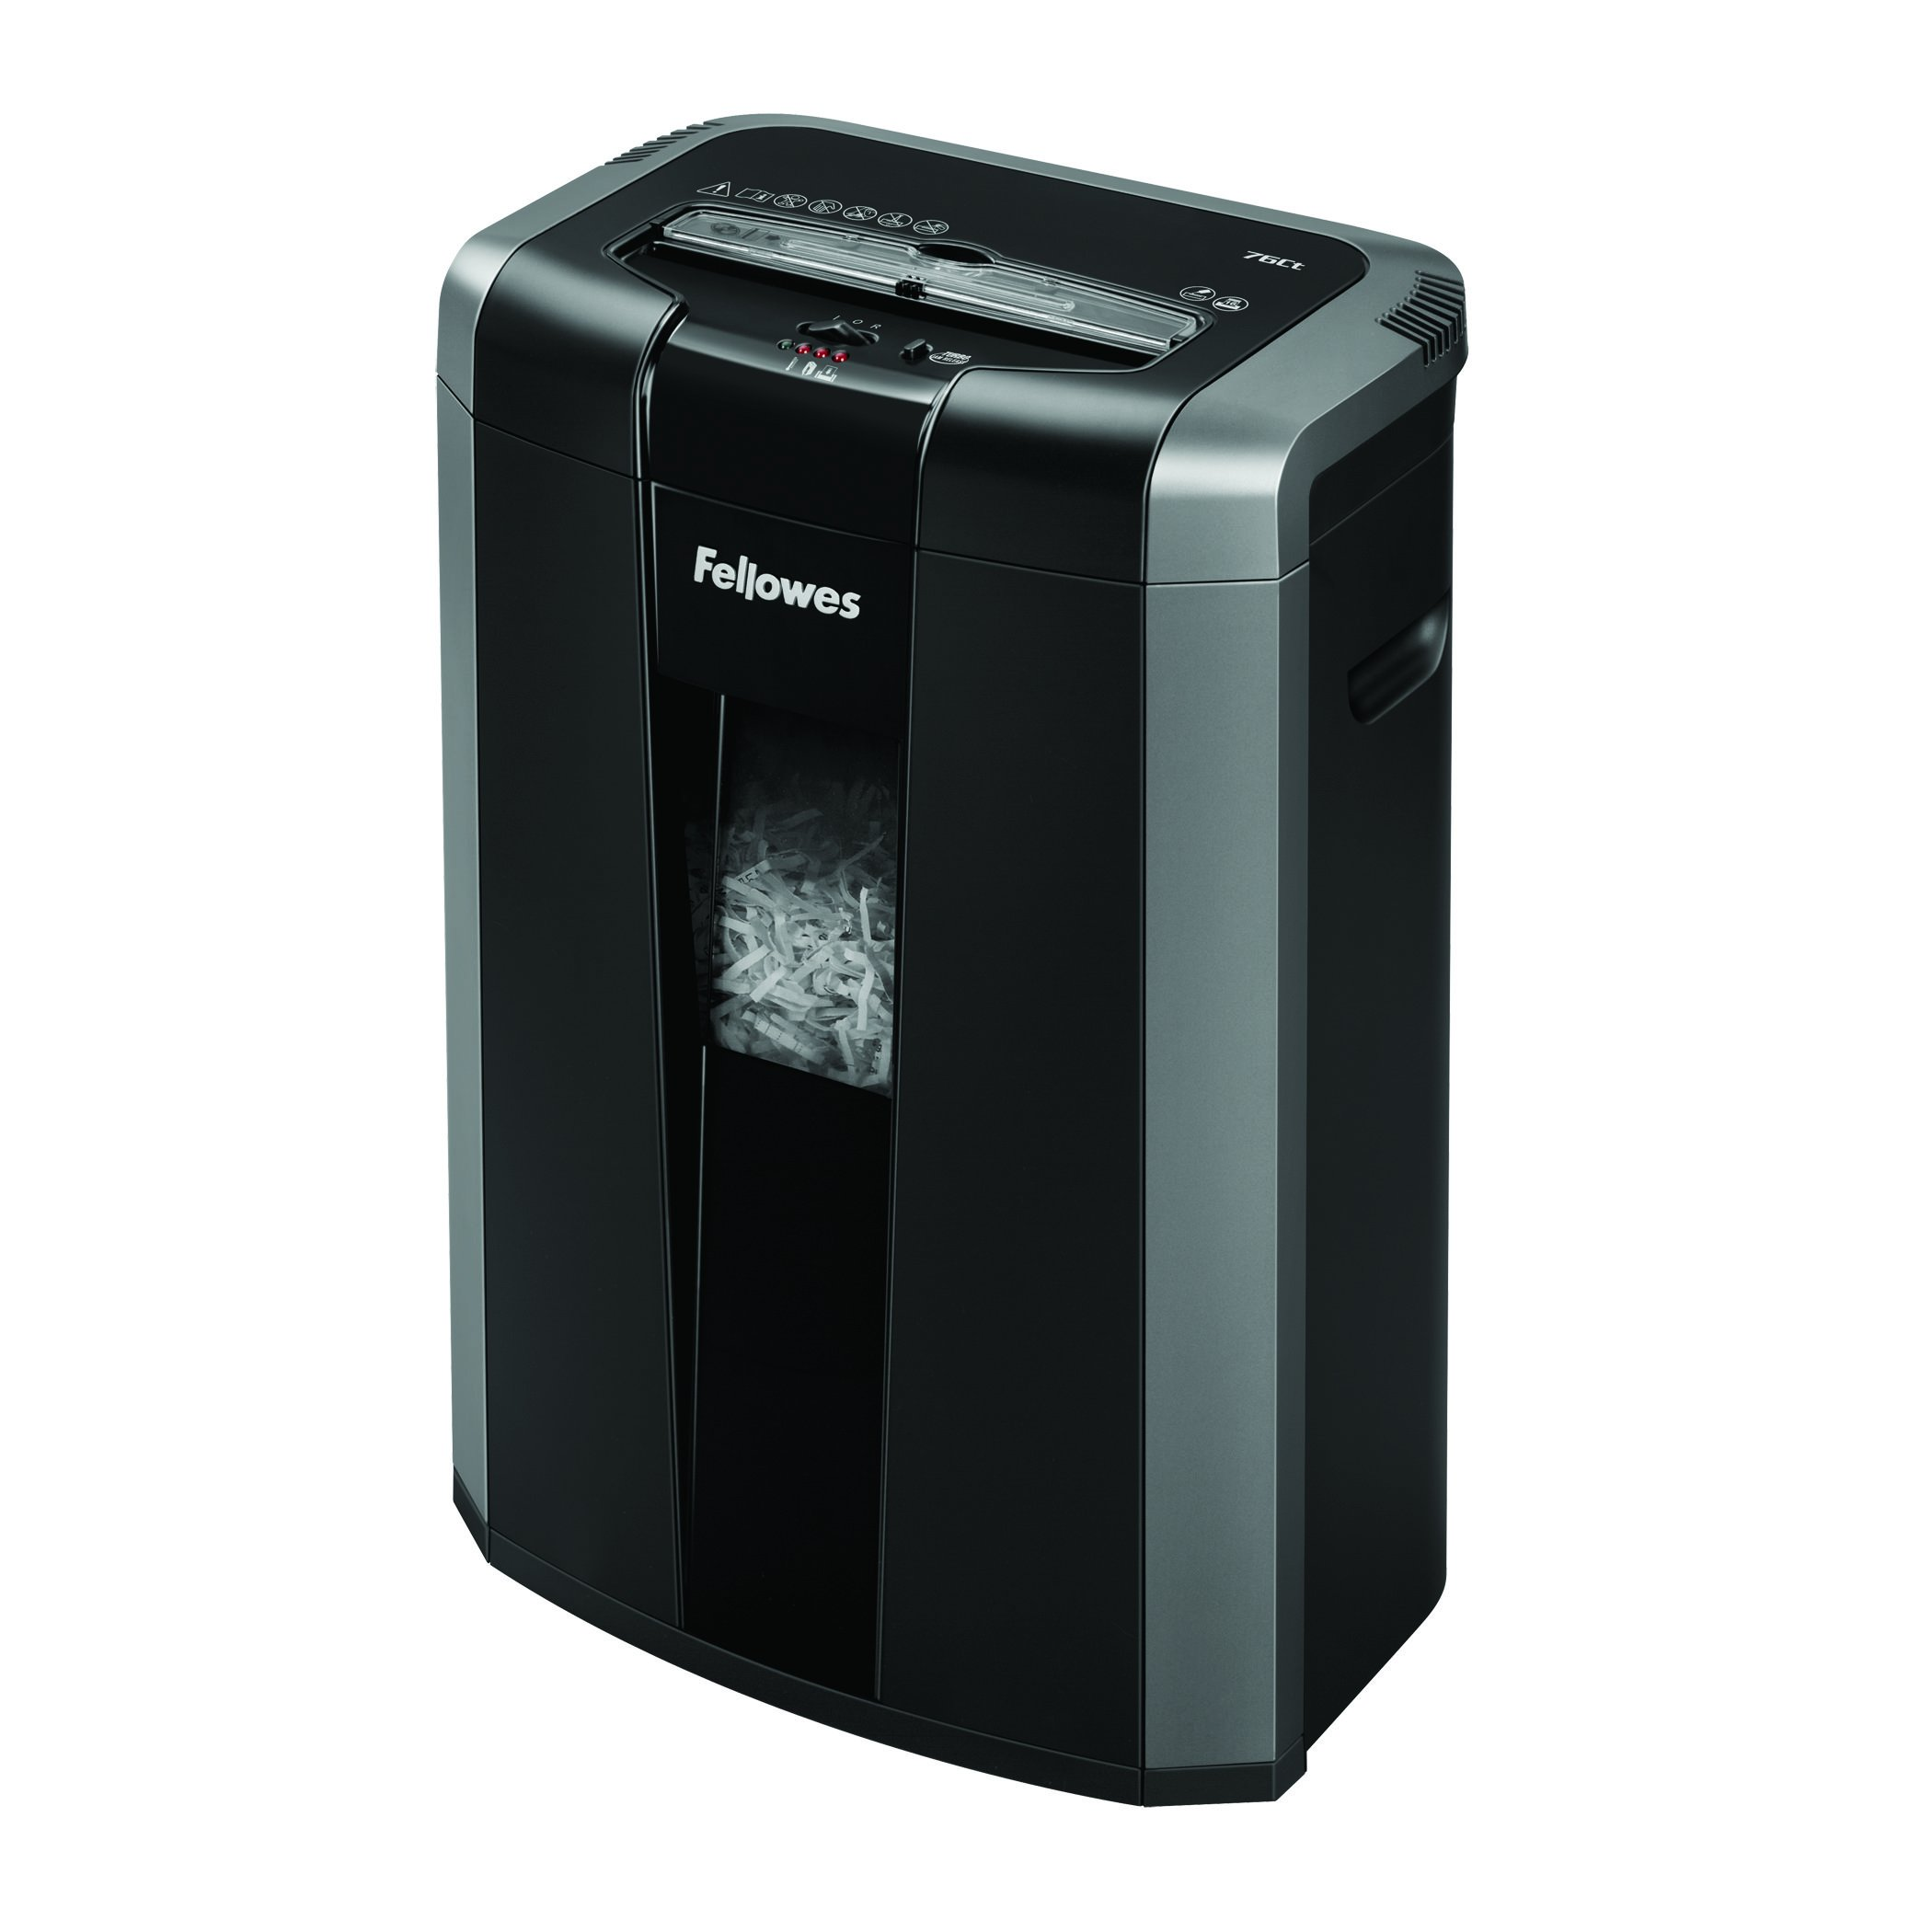 Fellowes Powershred 76Ct 16-Sheet Cross-Cut Heavy Duty Office Paper Shredder with Jam Buster (4676001) by Fellowes